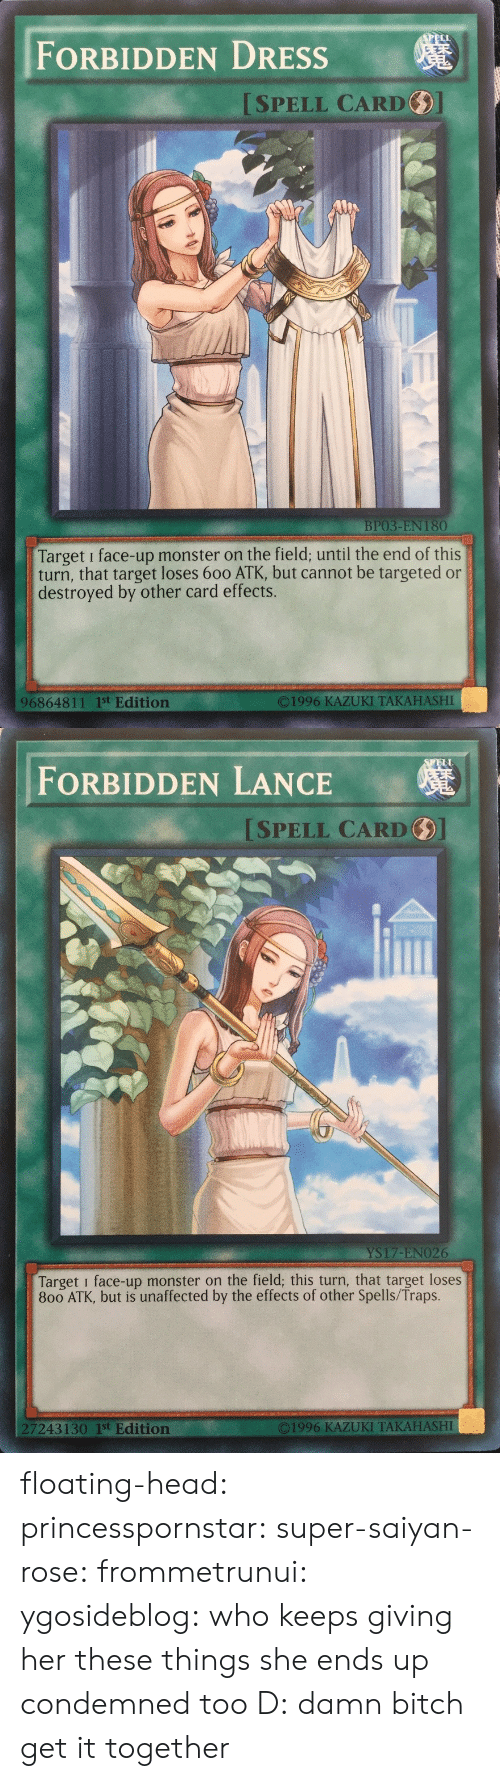 Bitch, Head, and Monster: FORBIDDEN DRESSs  ISPELL CARD  BP03-EN 180  Target i face-up monster on the field; until the end of this  turn, that target loses 600 ATK, but cannot be targeted or  destroyed by other card effects.  O1996 KAZUKI TAKAHASHI  96864811 1st Edition   ELL  FORBIDDEN LANCE  SPELL CARD  YS17-ENO26  Target i face-up monster on the field; this turn, that target loses  800 ATK, but is unaffected by the effects of other Spells/Traps.  7243130 1st Edition  ©1996 KAZUKI TAKAHASHI floating-head:  princesspornstar:  super-saiyan-rose:  frommetrunui:   ygosideblog: who keeps giving her these things   she ends up condemned too D:    damn bitch get it together